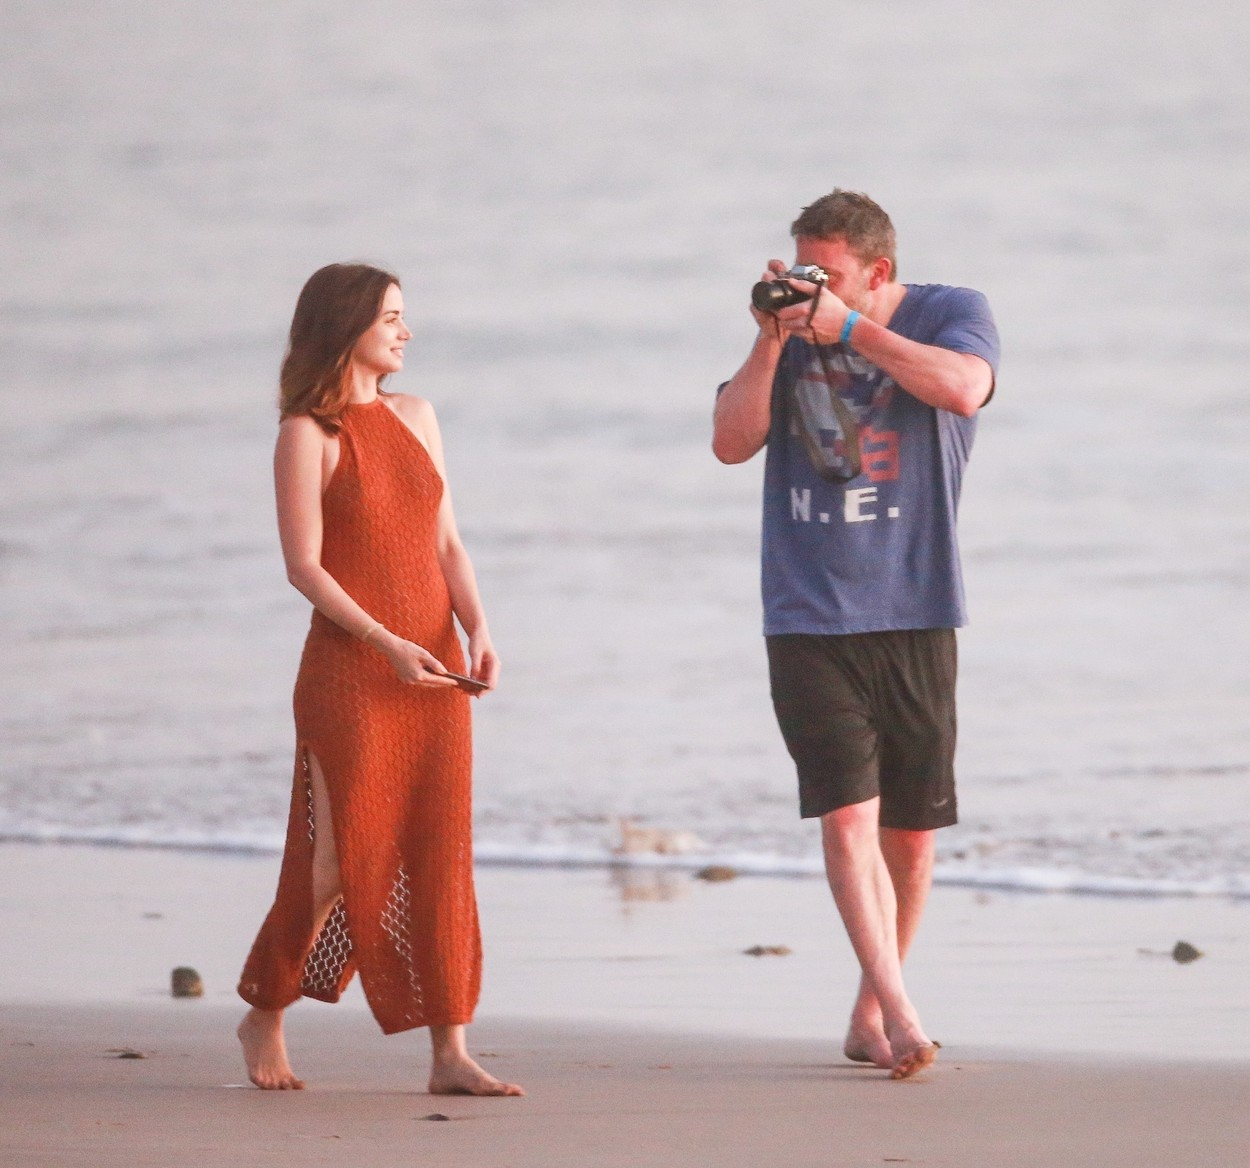 Costa Rica, COSTA RICA  - *PREMIUM-EXCLUSIVE*  - *Strict Web Embargo until 5 PM PT on March 12, 2020* Ben Affleck and new girlfriend, Ana De Armas enjoy a very romantic stroll on the beach in Costa Rica. Ben appeared clearly smitten with his Deep Water co-star snapping photos of her, cuddling and leaning in for a sweet kiss as they enjoyed a stroll on the beautiful beach. The 31 year old Cuban stunner went topless and wore a cheeky bikini bottom over a knitted chestnut halter dress. Ana could be seen snapping selfies while a smiling Ben sipped a Coca Cola and snapped photos of her.  *Shot on March 10, 2020*  BACKGRID USA 11 MARCH 2020, Image: 505574566, License: Rights-managed, Restrictions: RIGHTS: WORLDWIDE EXCEPT IN GERMANY, UNITED KINGDOM, Model Release: no, Credit line: CPR / BACKGRID / Backgrid USA / Profimedia